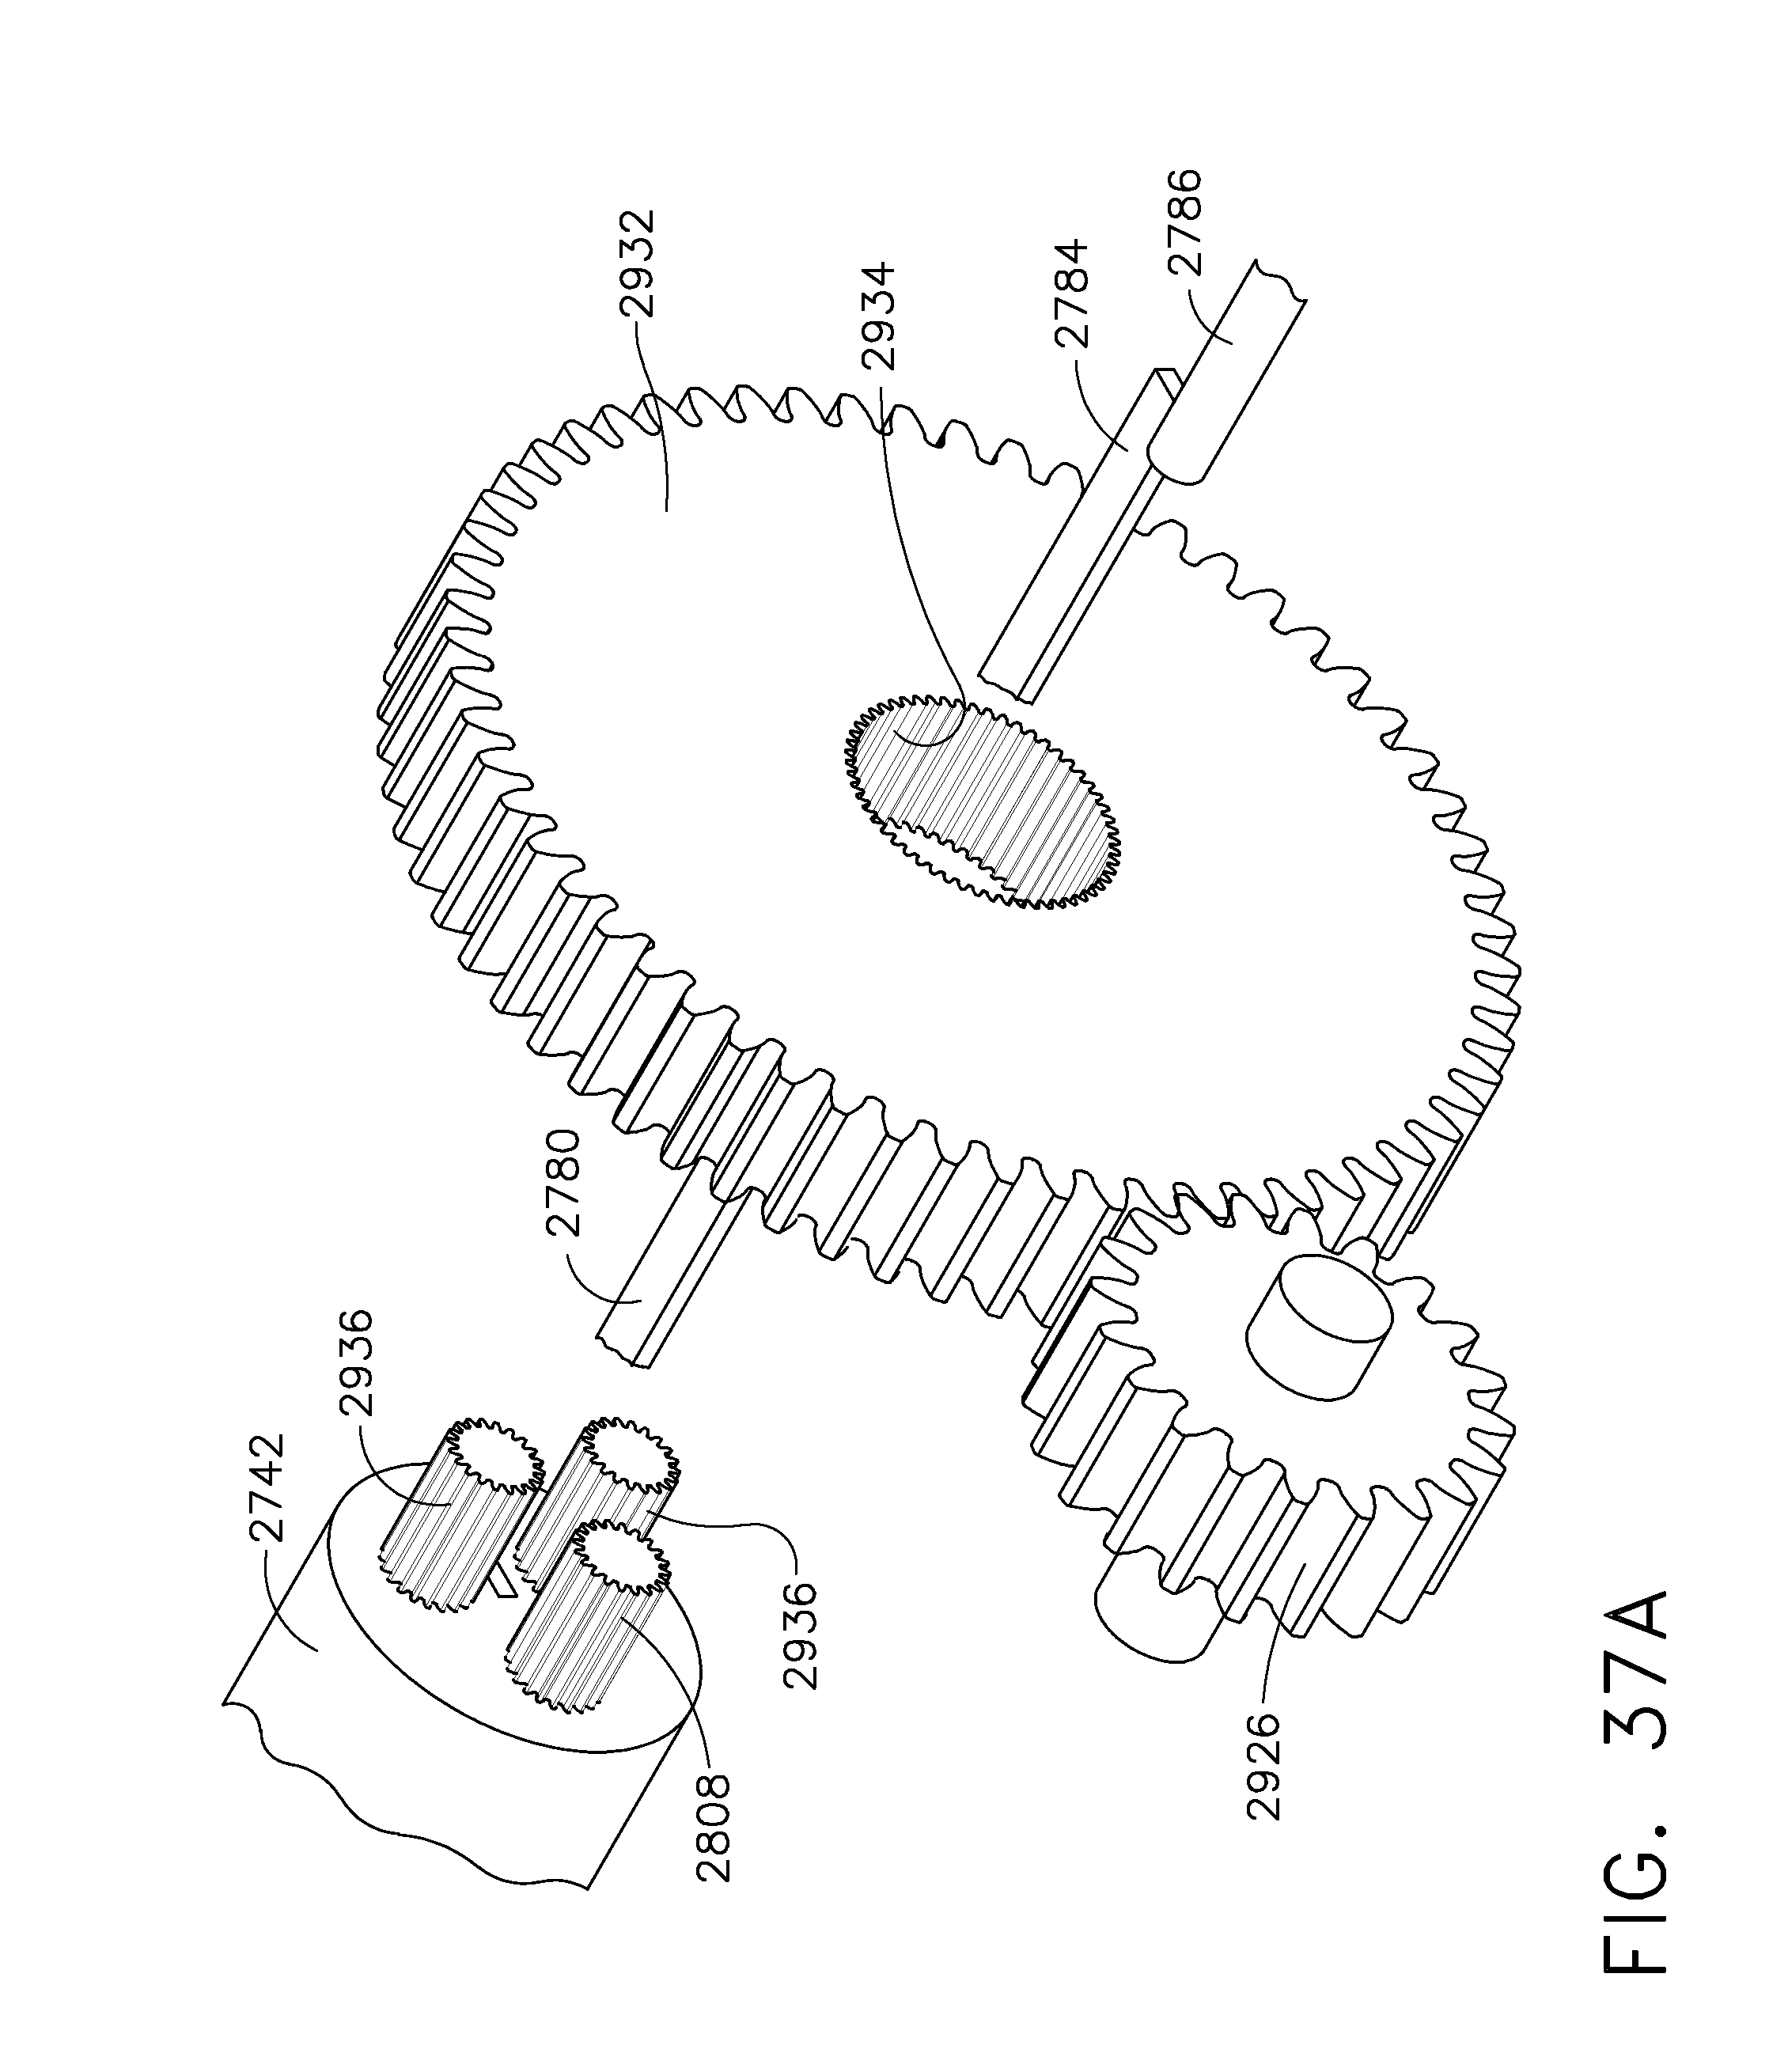 Us20150265357a1 automated reloading devices for replacing used end effectors on robotic surgical systems patents